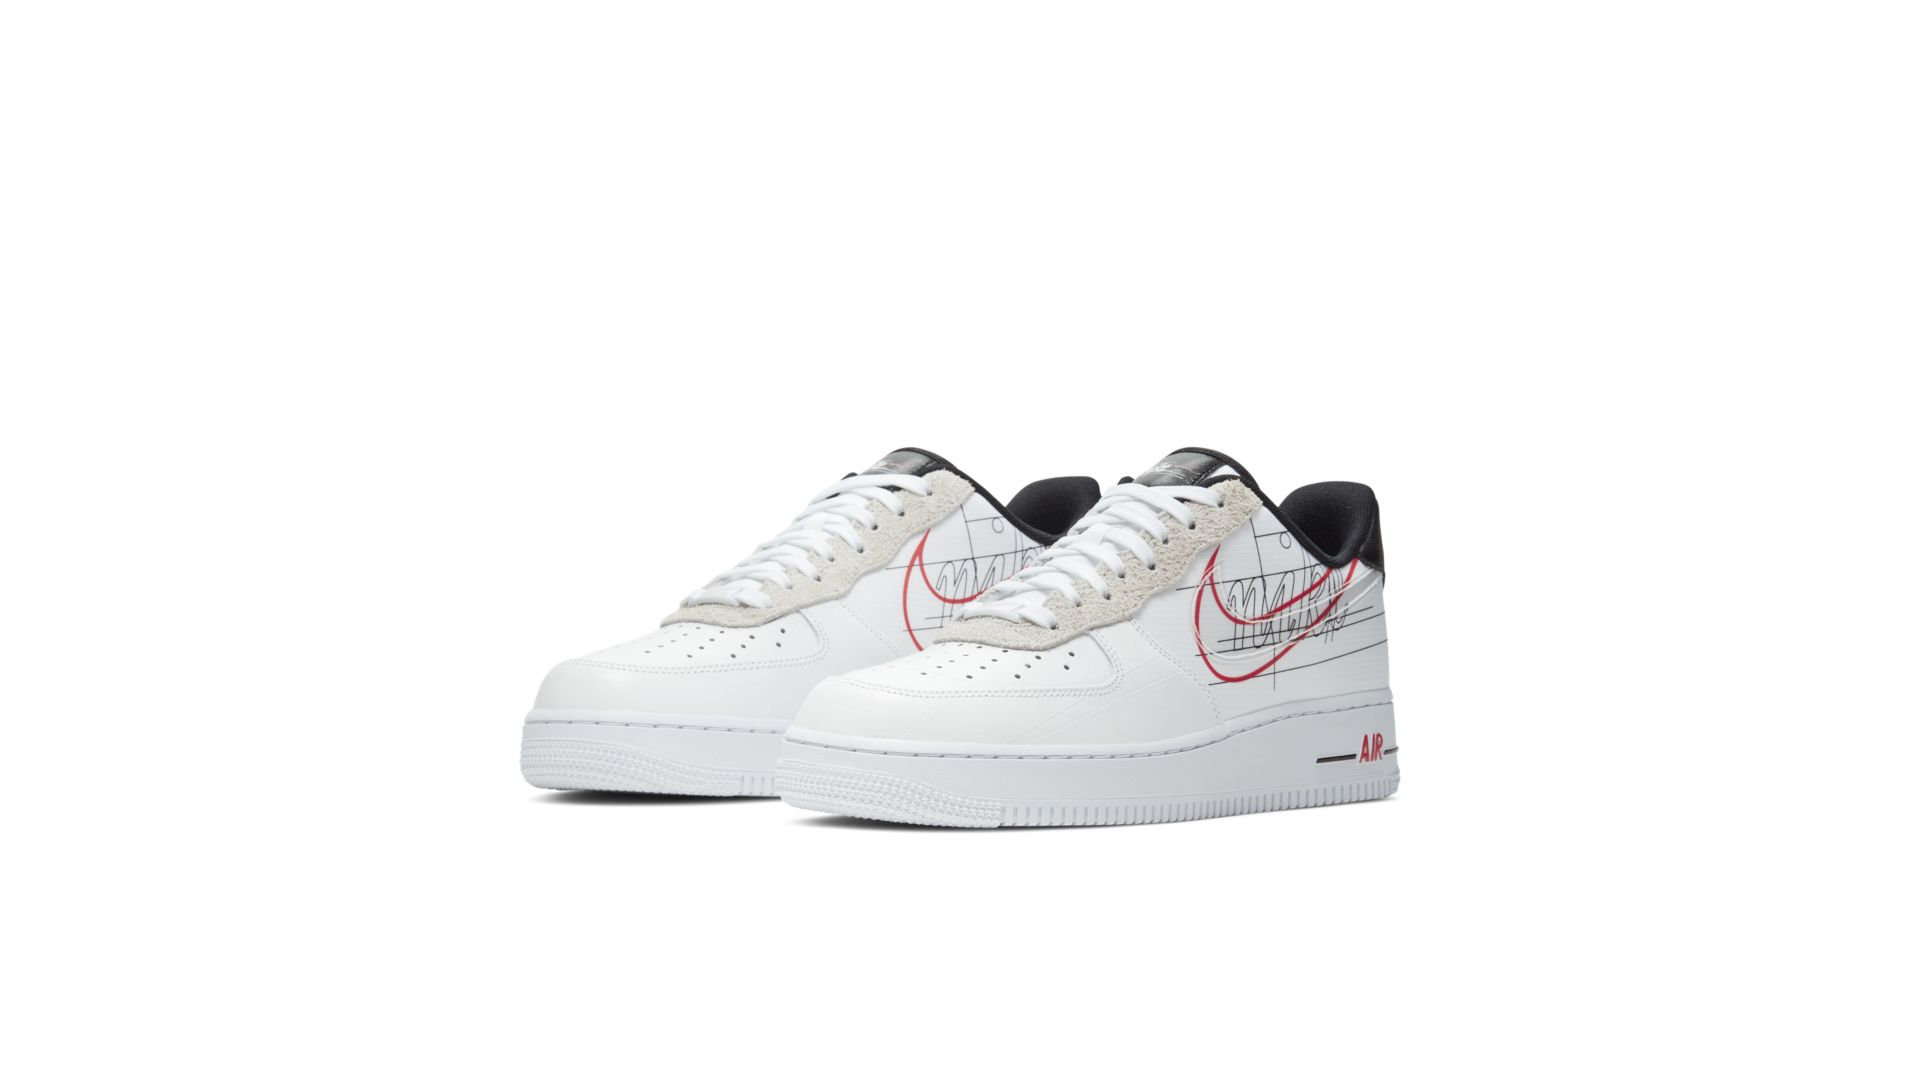 Nike Air Force 1 Low Script Swoosh Pack (CK9257 100)